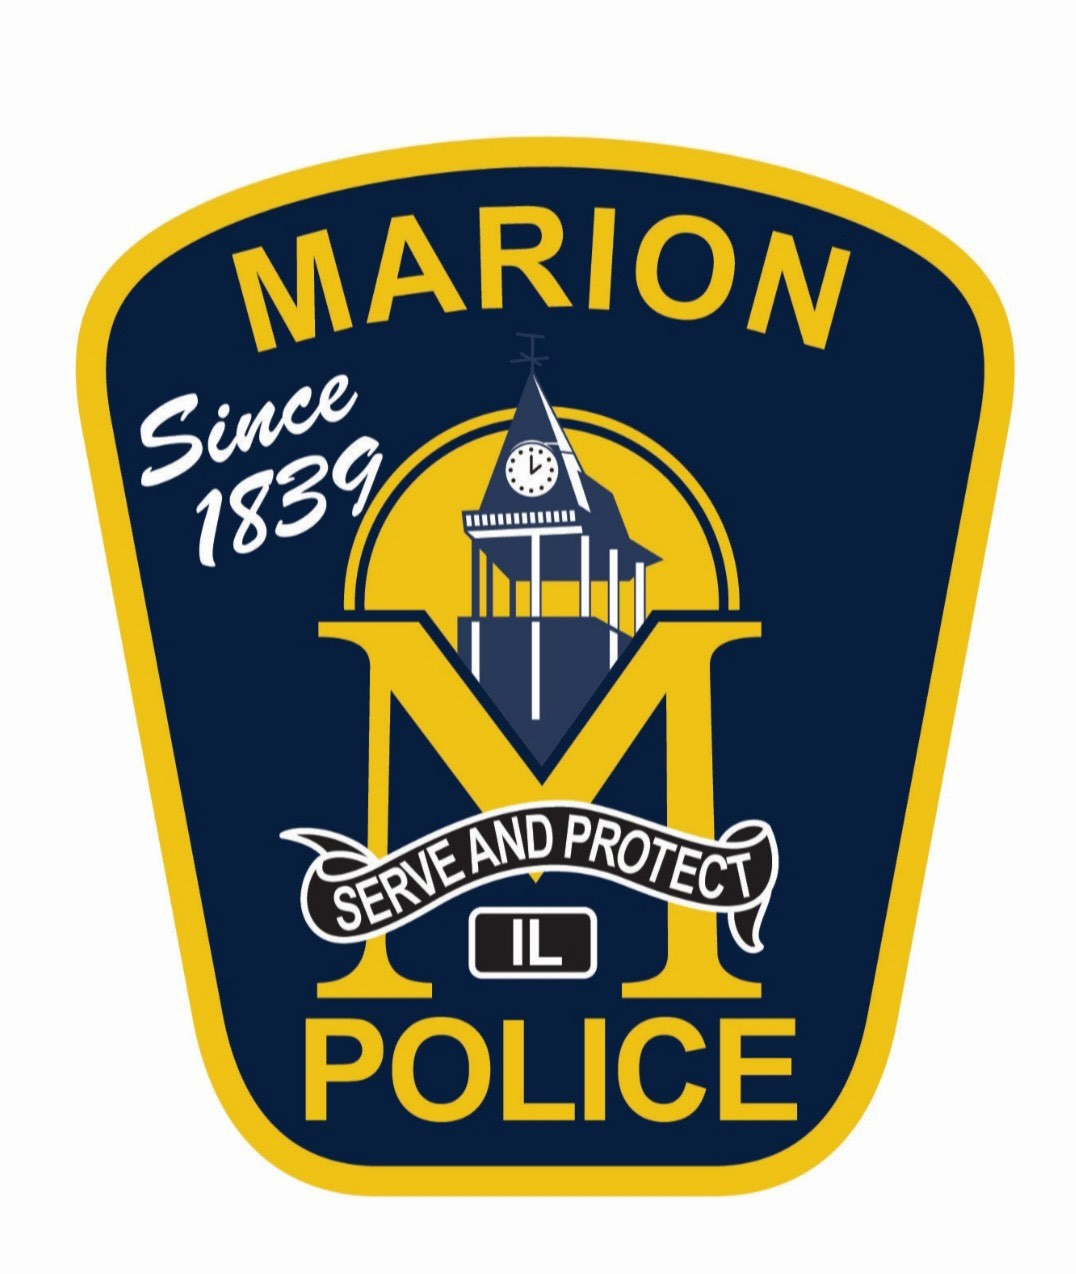 City of Marion Police Dept